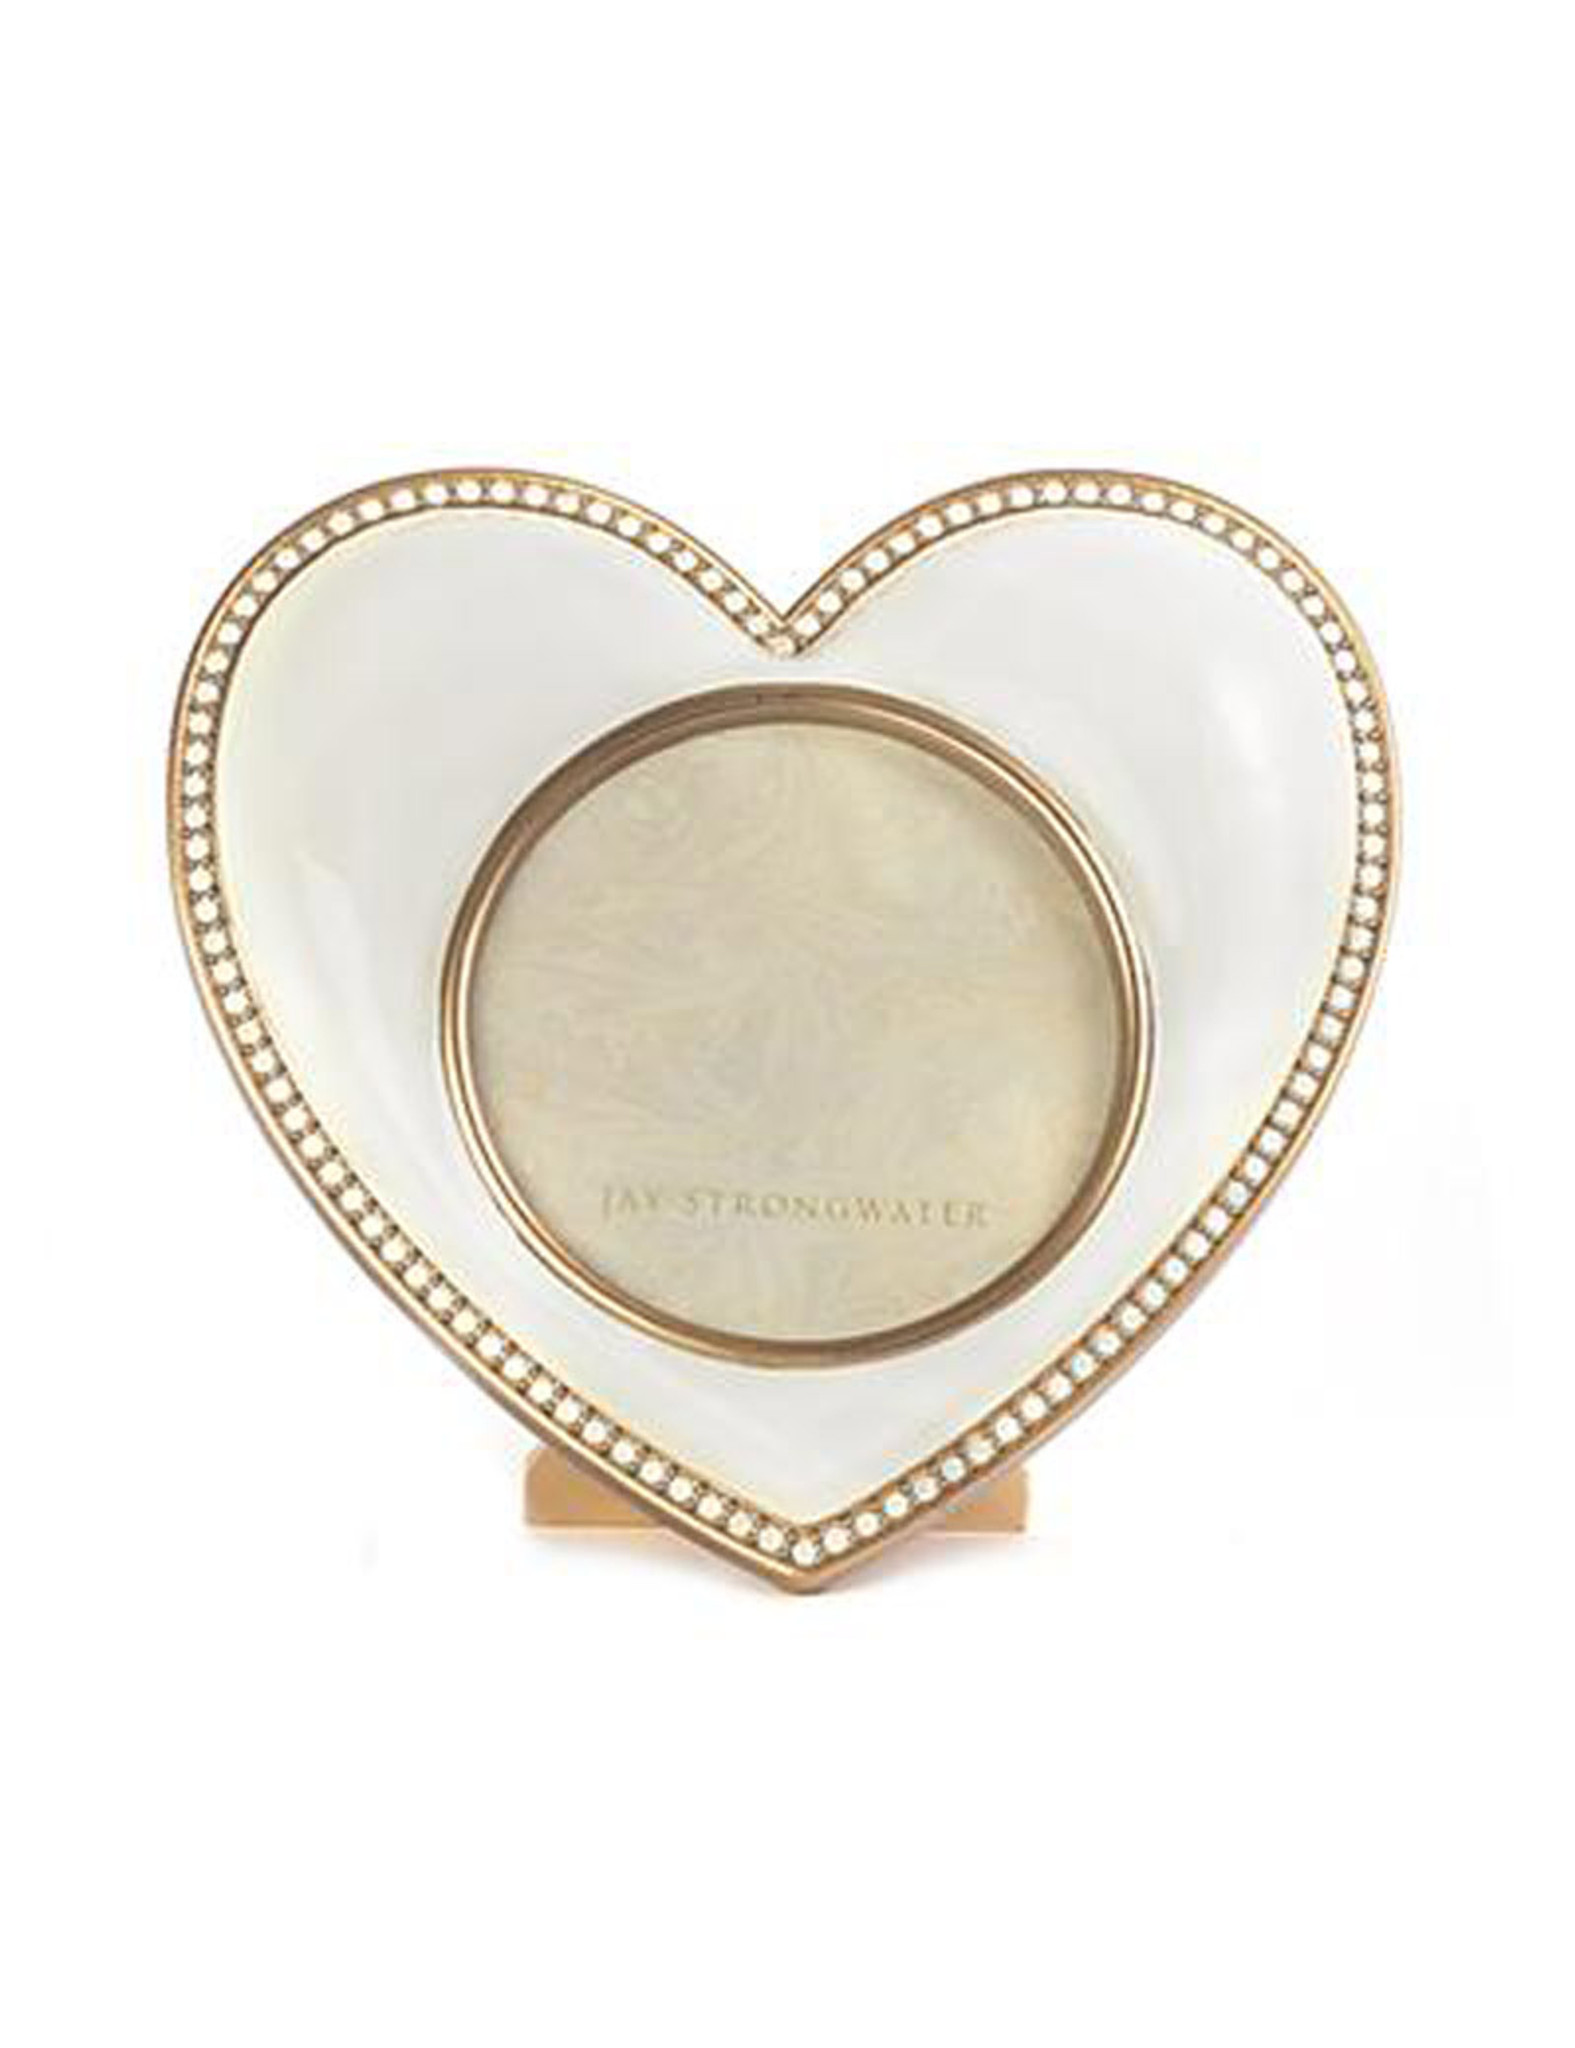 Jay Strongwater Chantal Gold Heart Picture Frame SPF5809-292 - HomeBello